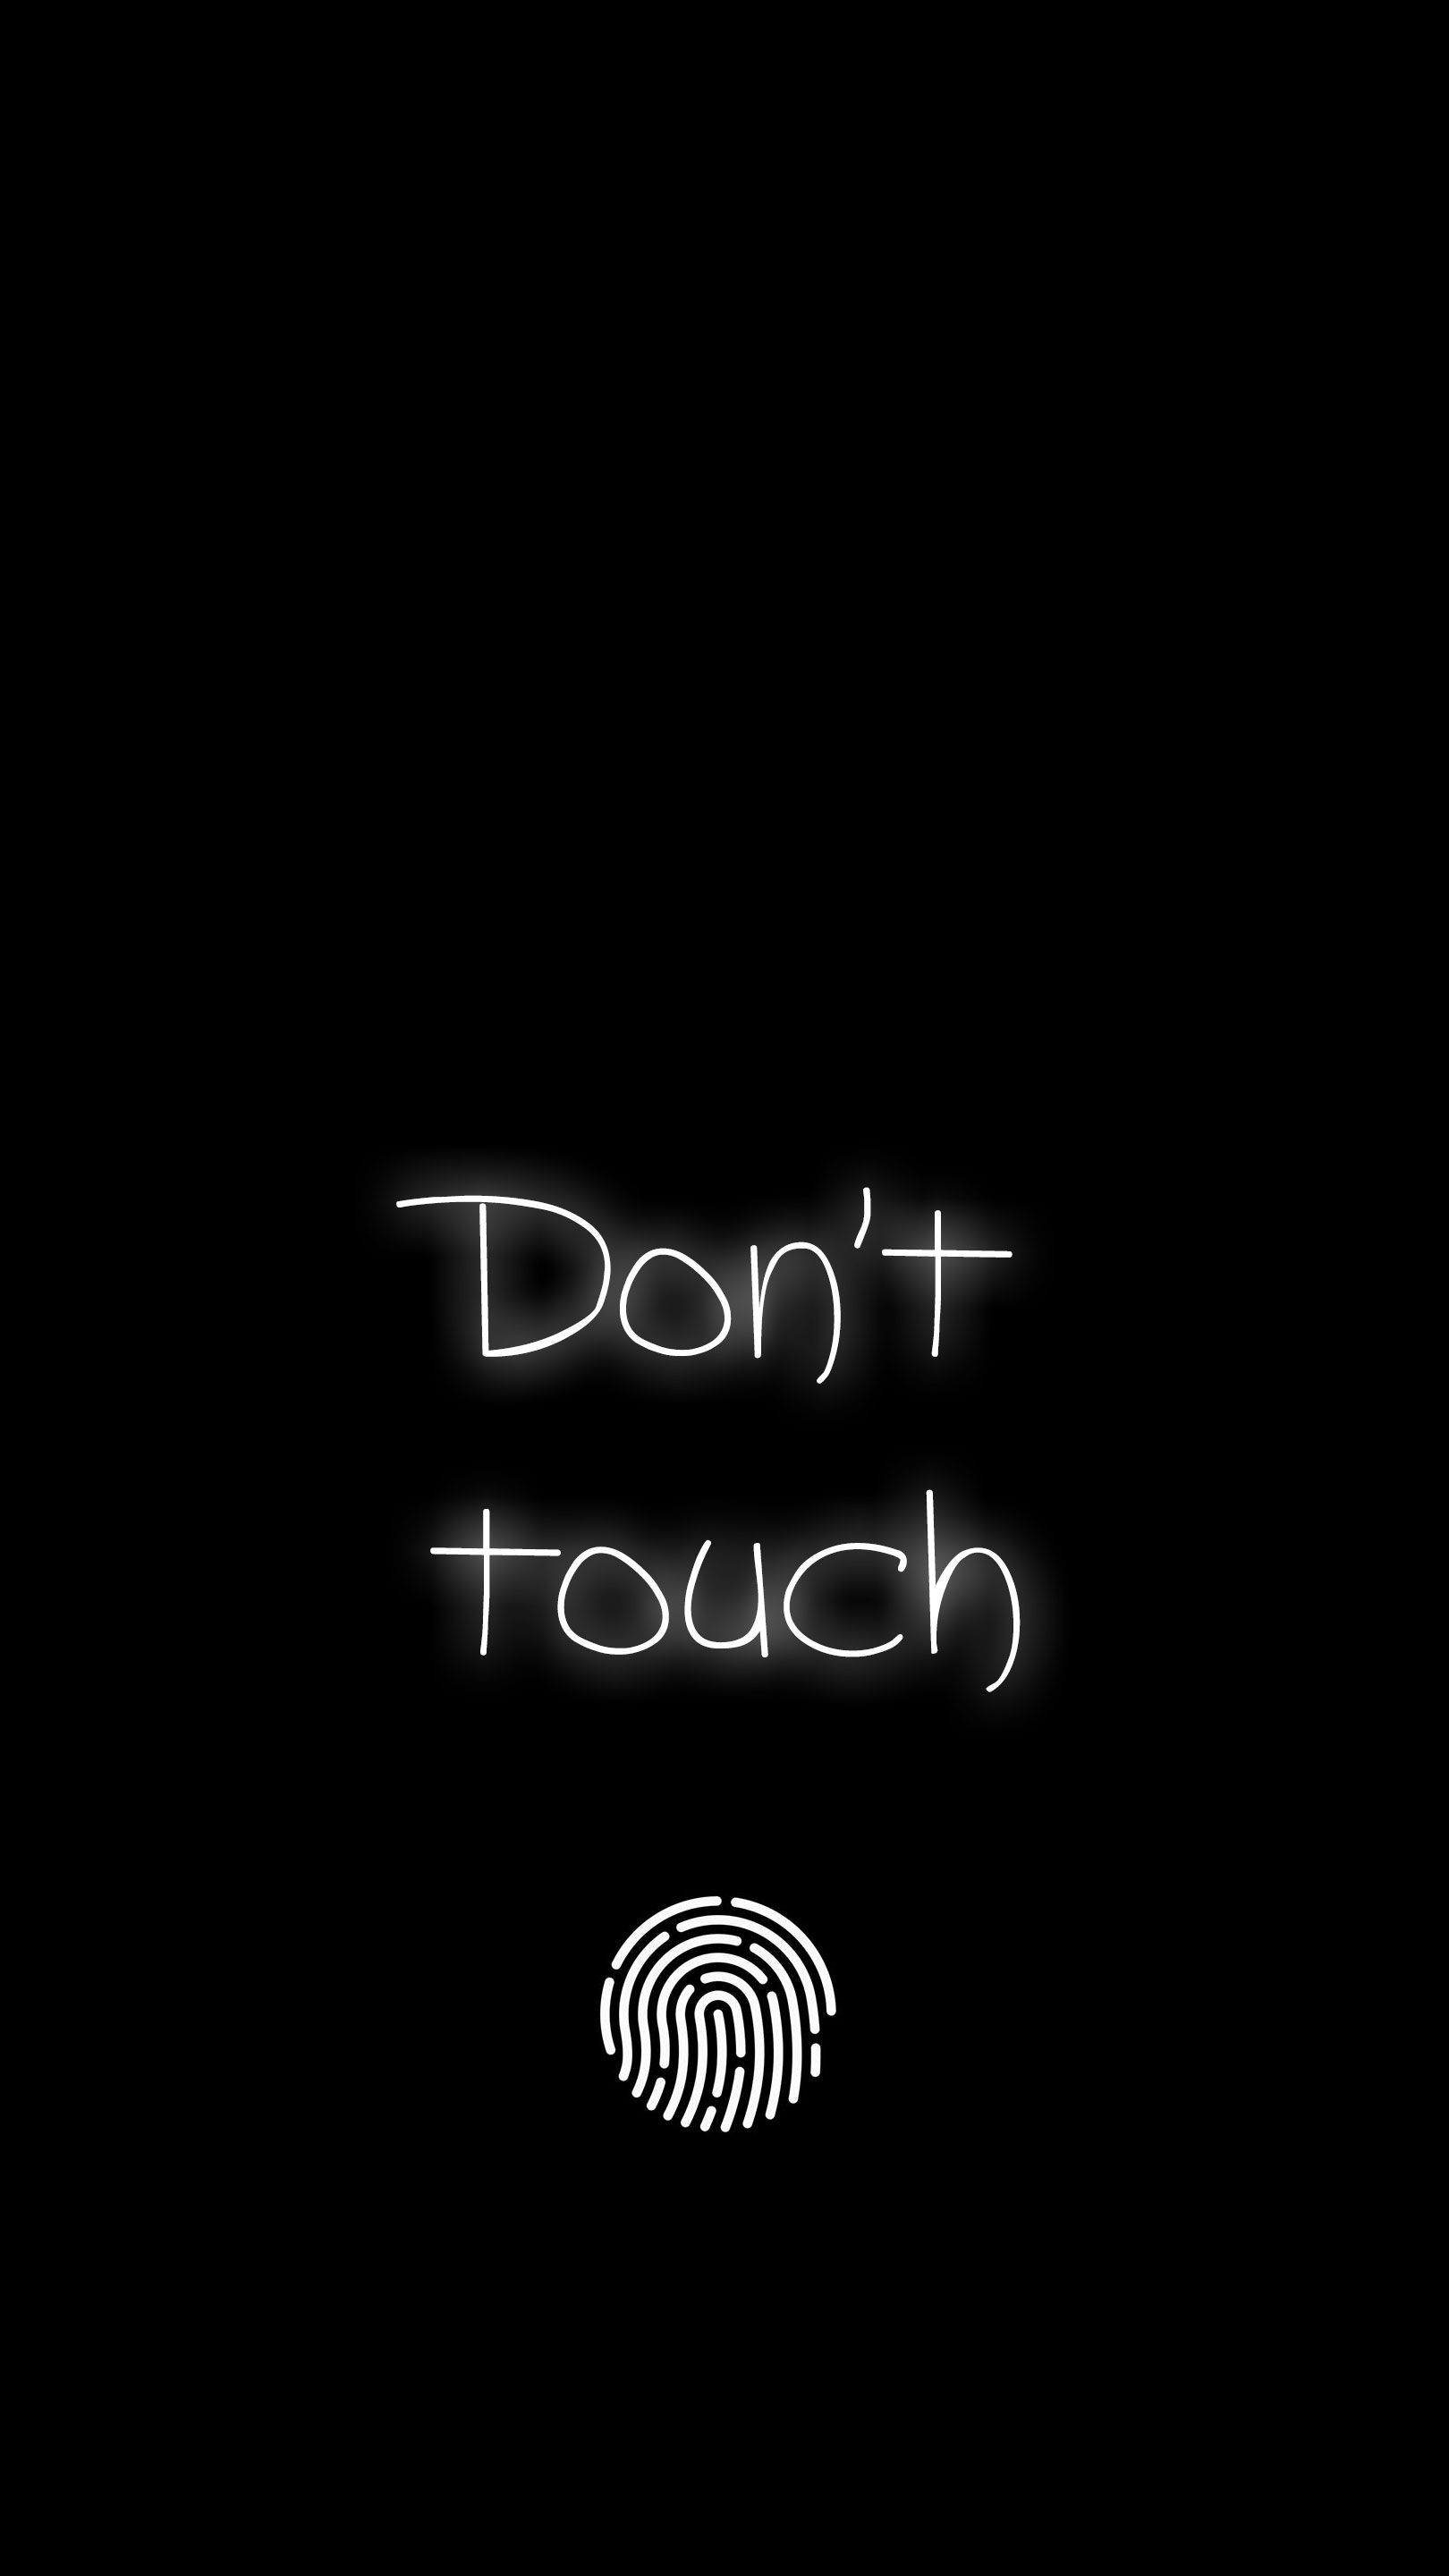 Dont Touch Iphone Wallpaper Funny Phone Wallpaper Funny Iphone Wallpaper Dont Touch My Phone Wallpapers